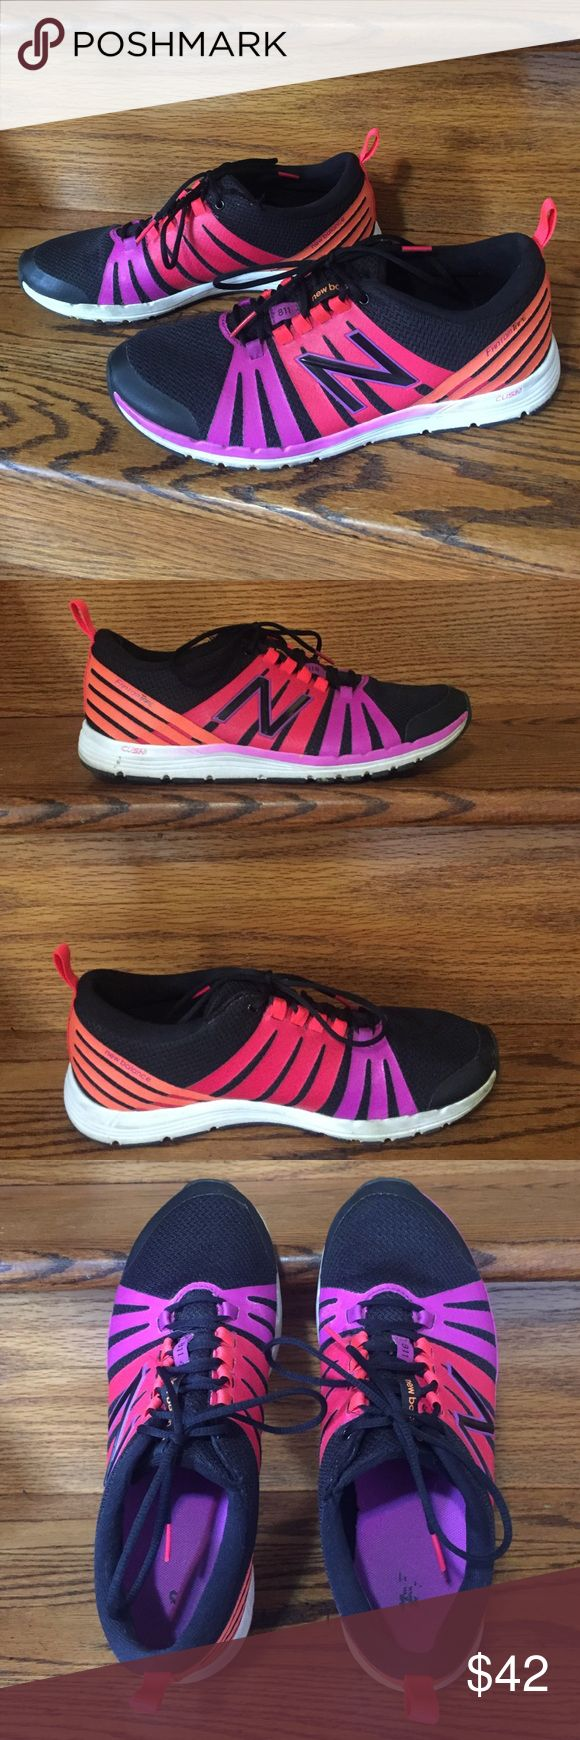 Super Cute Women's NB Size 9.5B New Balance brand. Size 9.5B (B is regular width). WX811BM. Black, purple, pink, orange, white. In good condition! Just need to get rid of some shoes. These have a no-slip tongue (that means it is attached to the shoe on one side). ✨Make an offer if you don't like the price.✨ New Balance Shoes Athletic Shoes